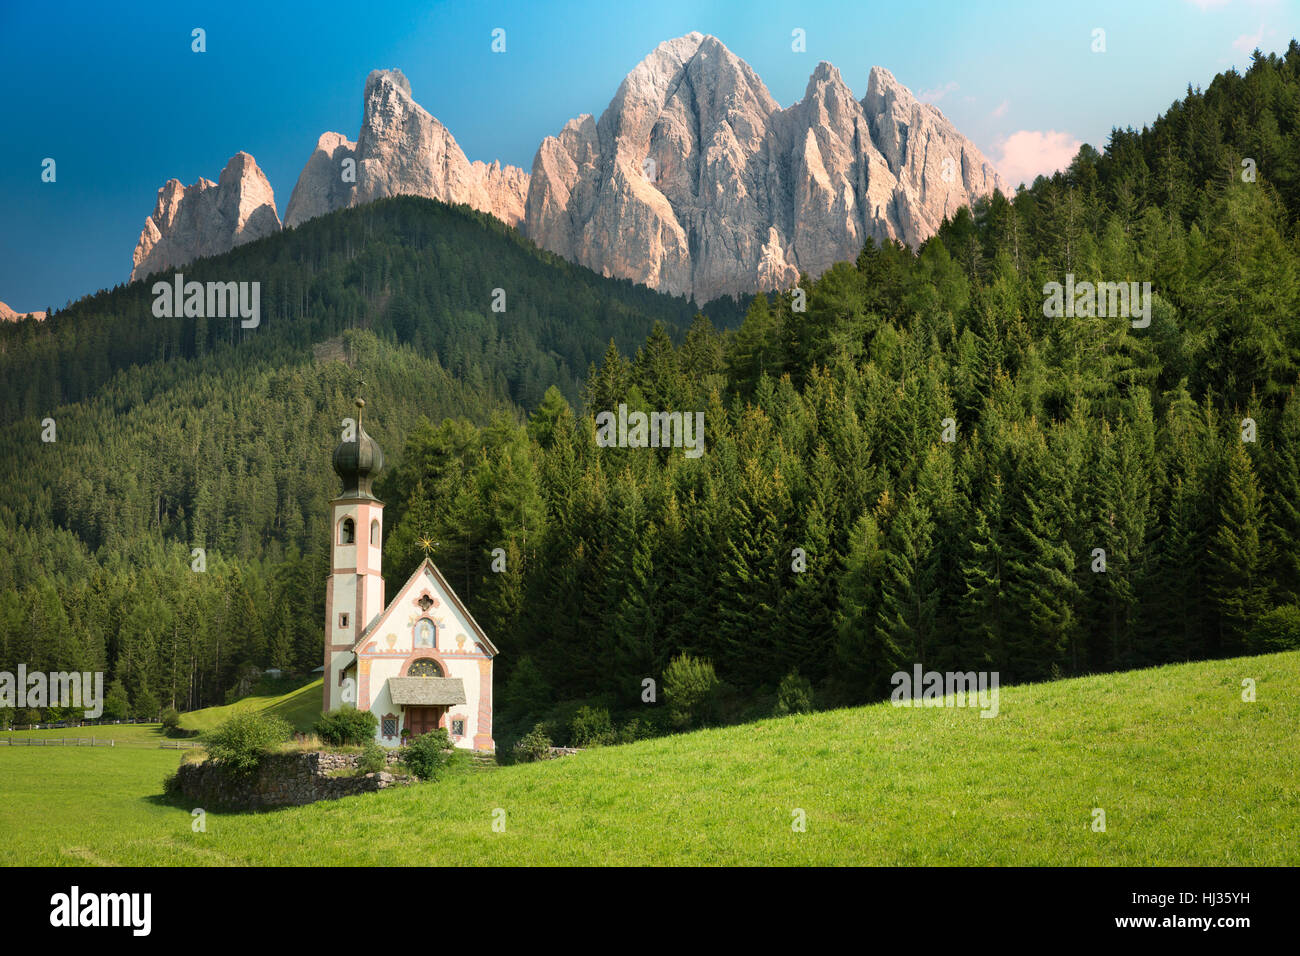 St. Johann in Val di Funes, South Tyrol, Italy Stock Photo